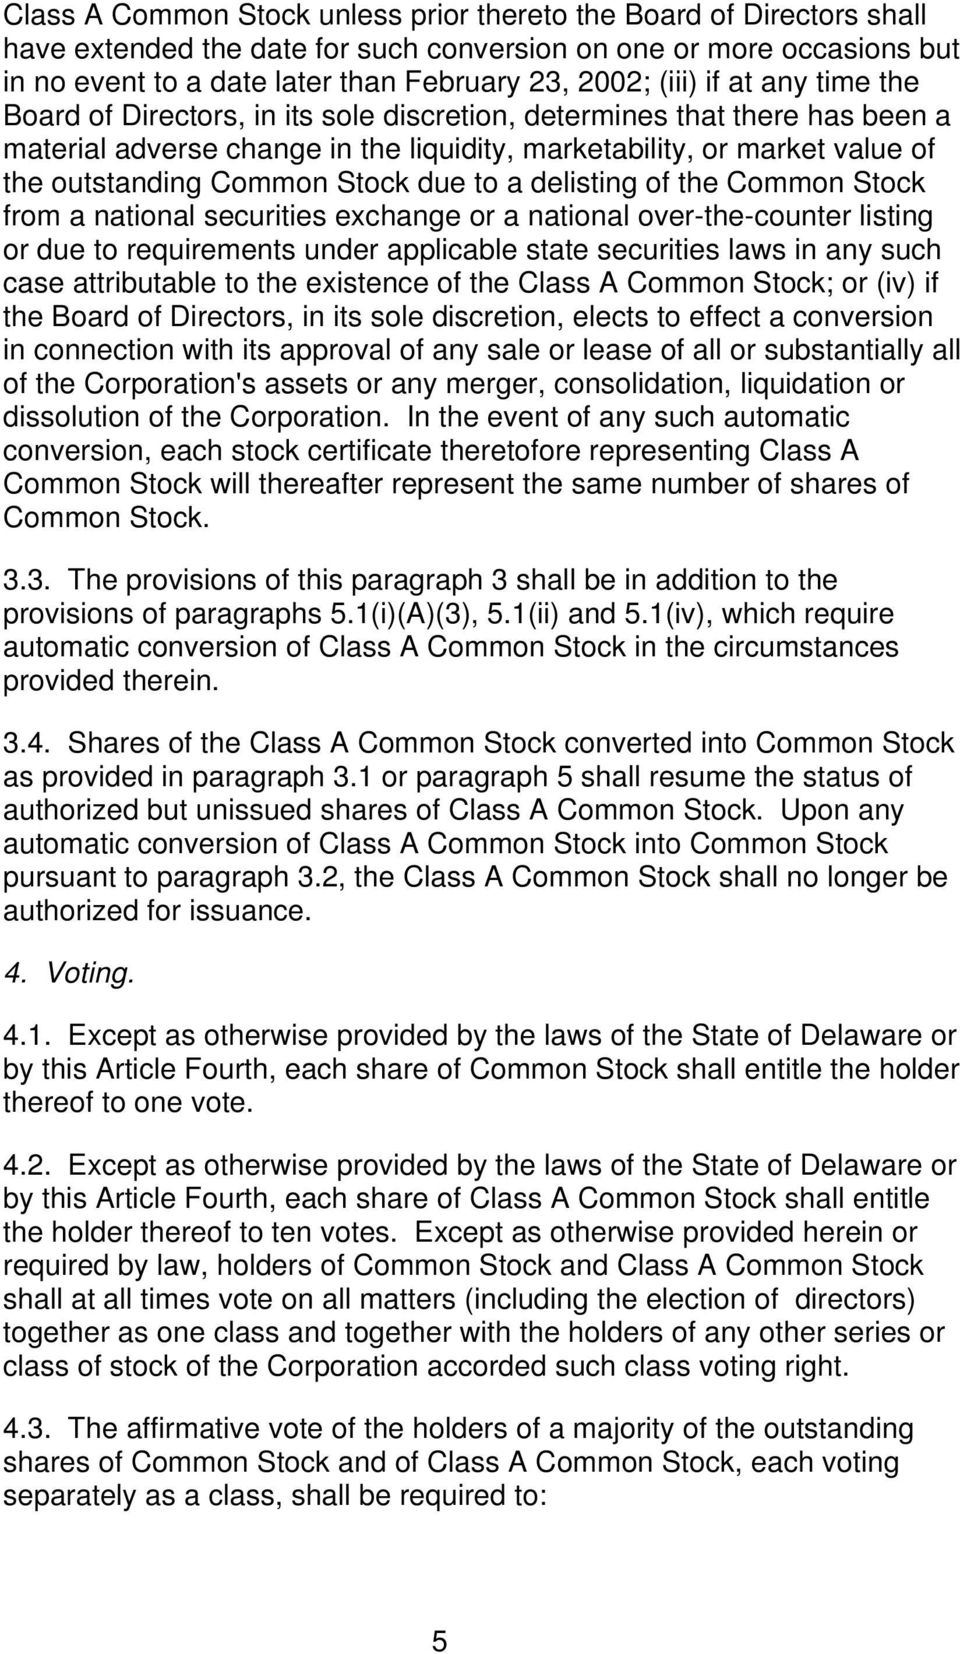 Common Stock due to a delisting of the Common Stock from a national securities exchange or a national over-the-counter listing or due to requirements under applicable state securities laws in any